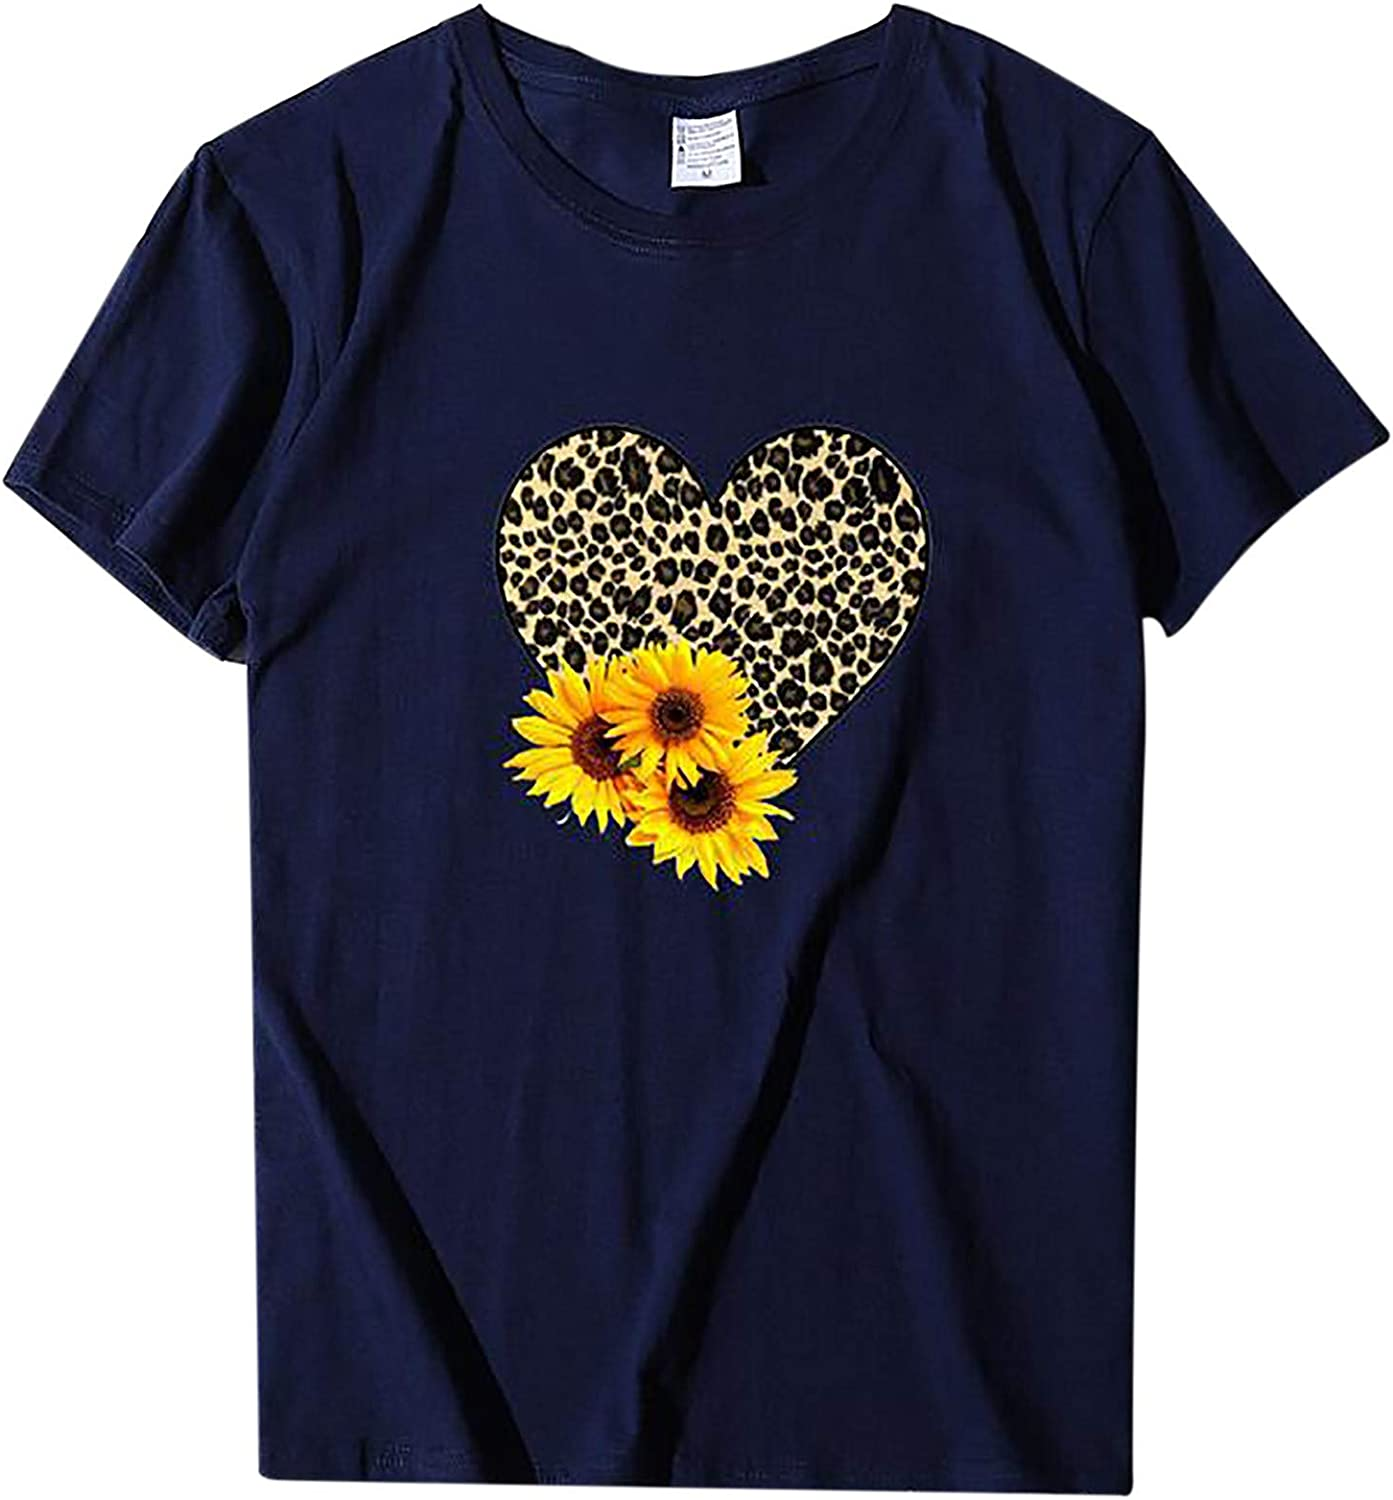 Womens Tshirts Graphic,Valentine's Day Shirt for Womens Cute Gnomes T-Shirt Love Heart Printed Shirts Short Sleeve Graphic Tees Tops Navy